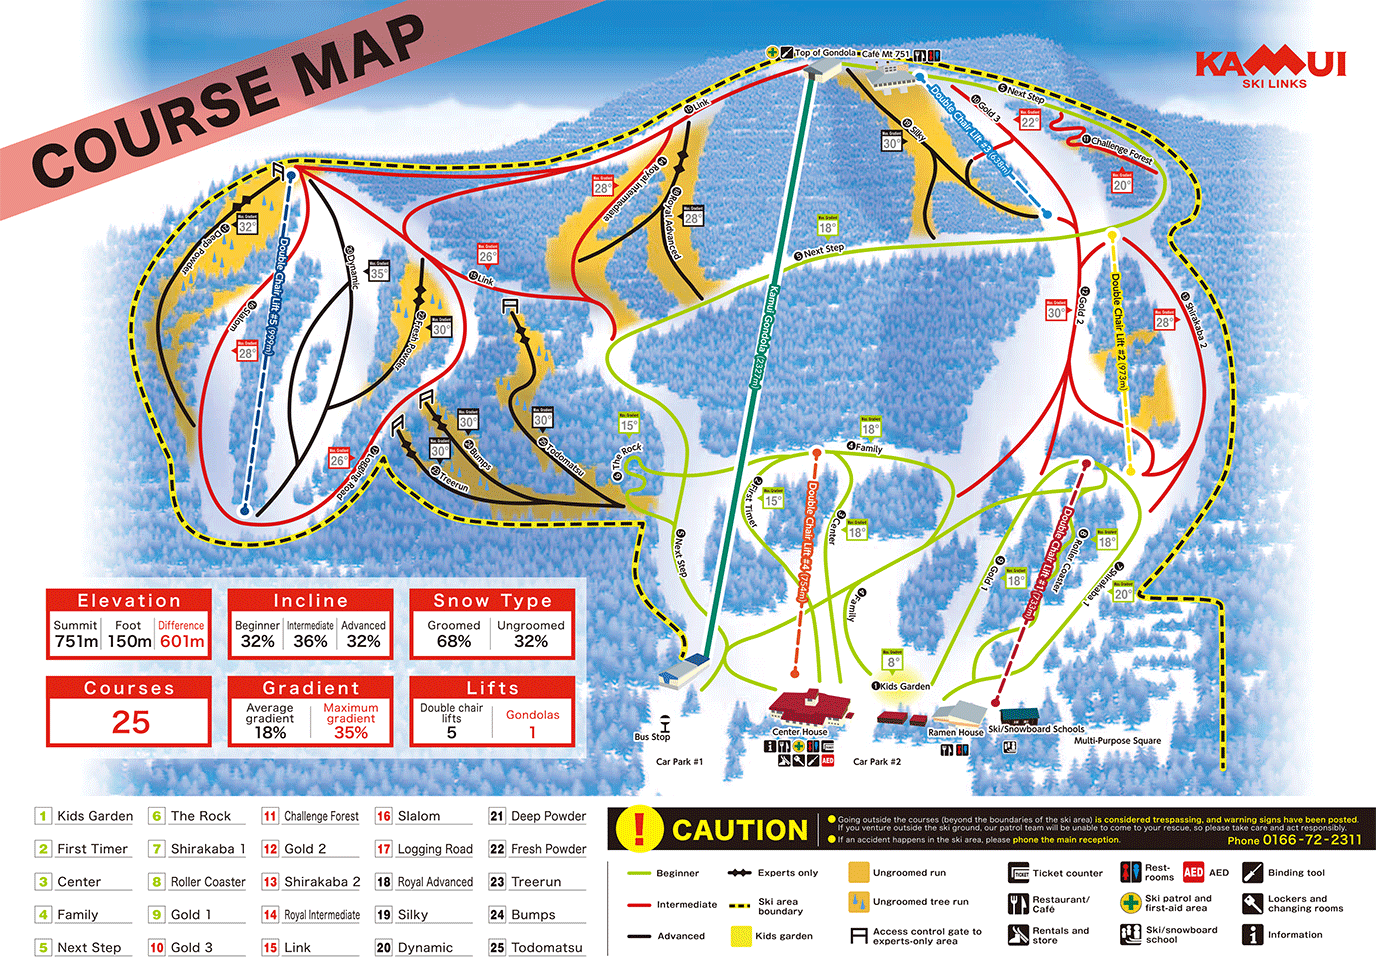 KAMUI SKI LINKS COURSE MAP